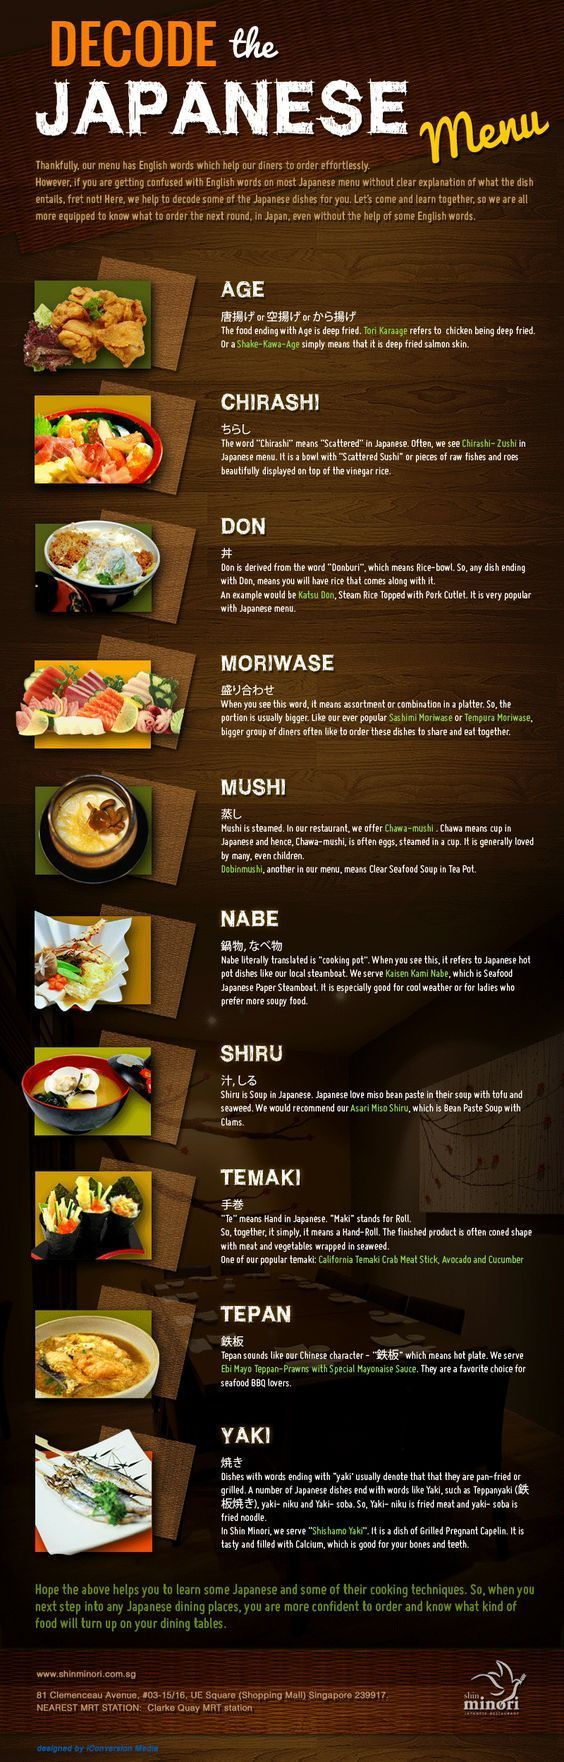 Decode the Japanese Menu! | via Shin Minori Japanese Restaurant ...